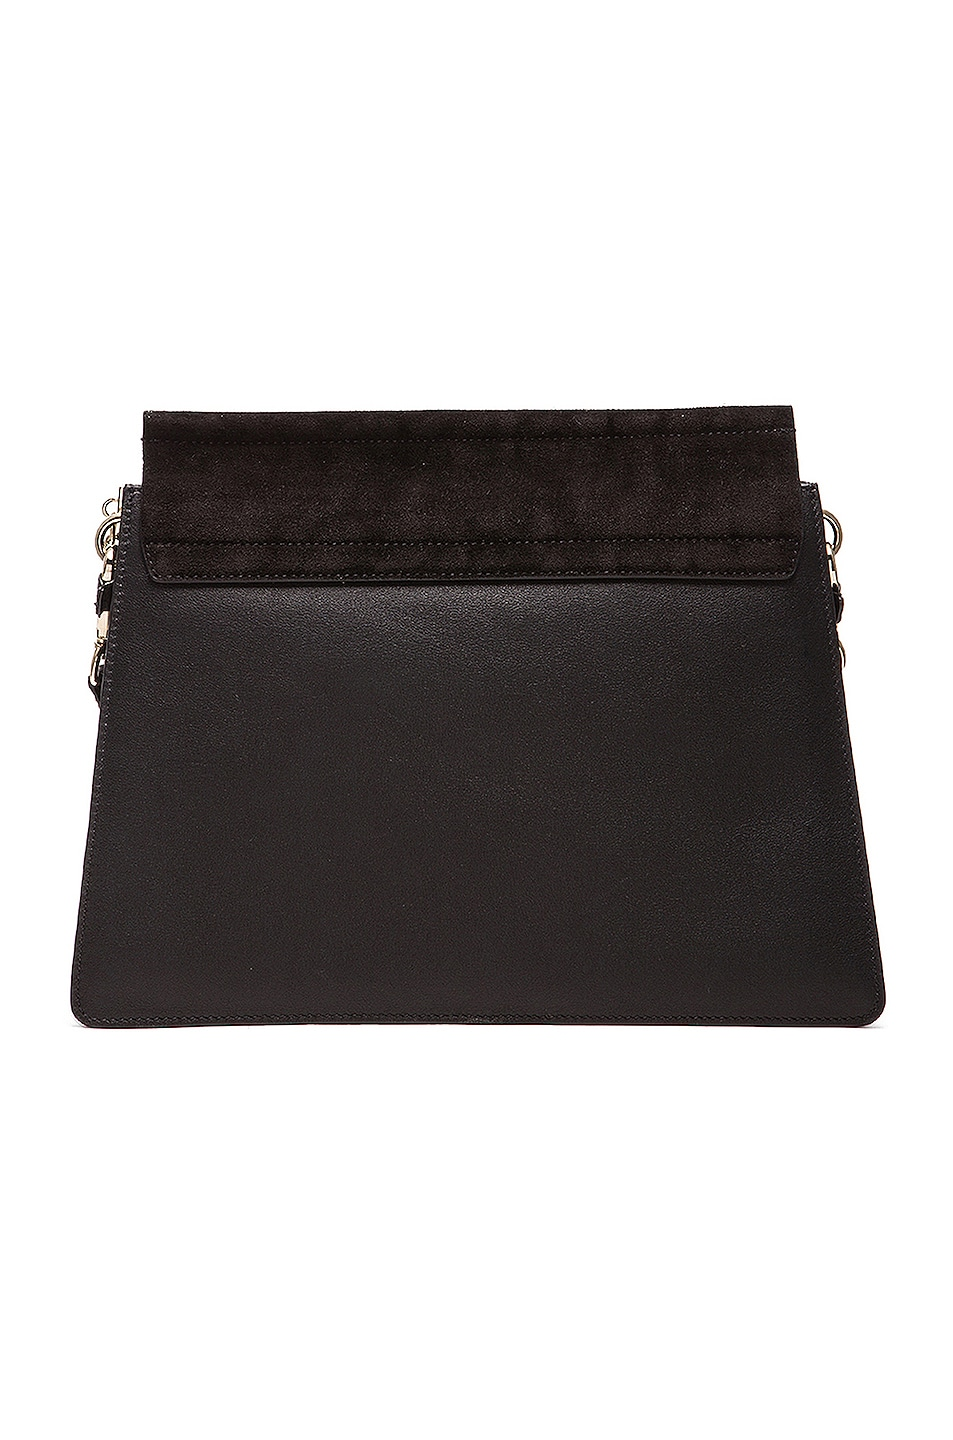 Image 3 of Chloe Medium Faye Bag in Black